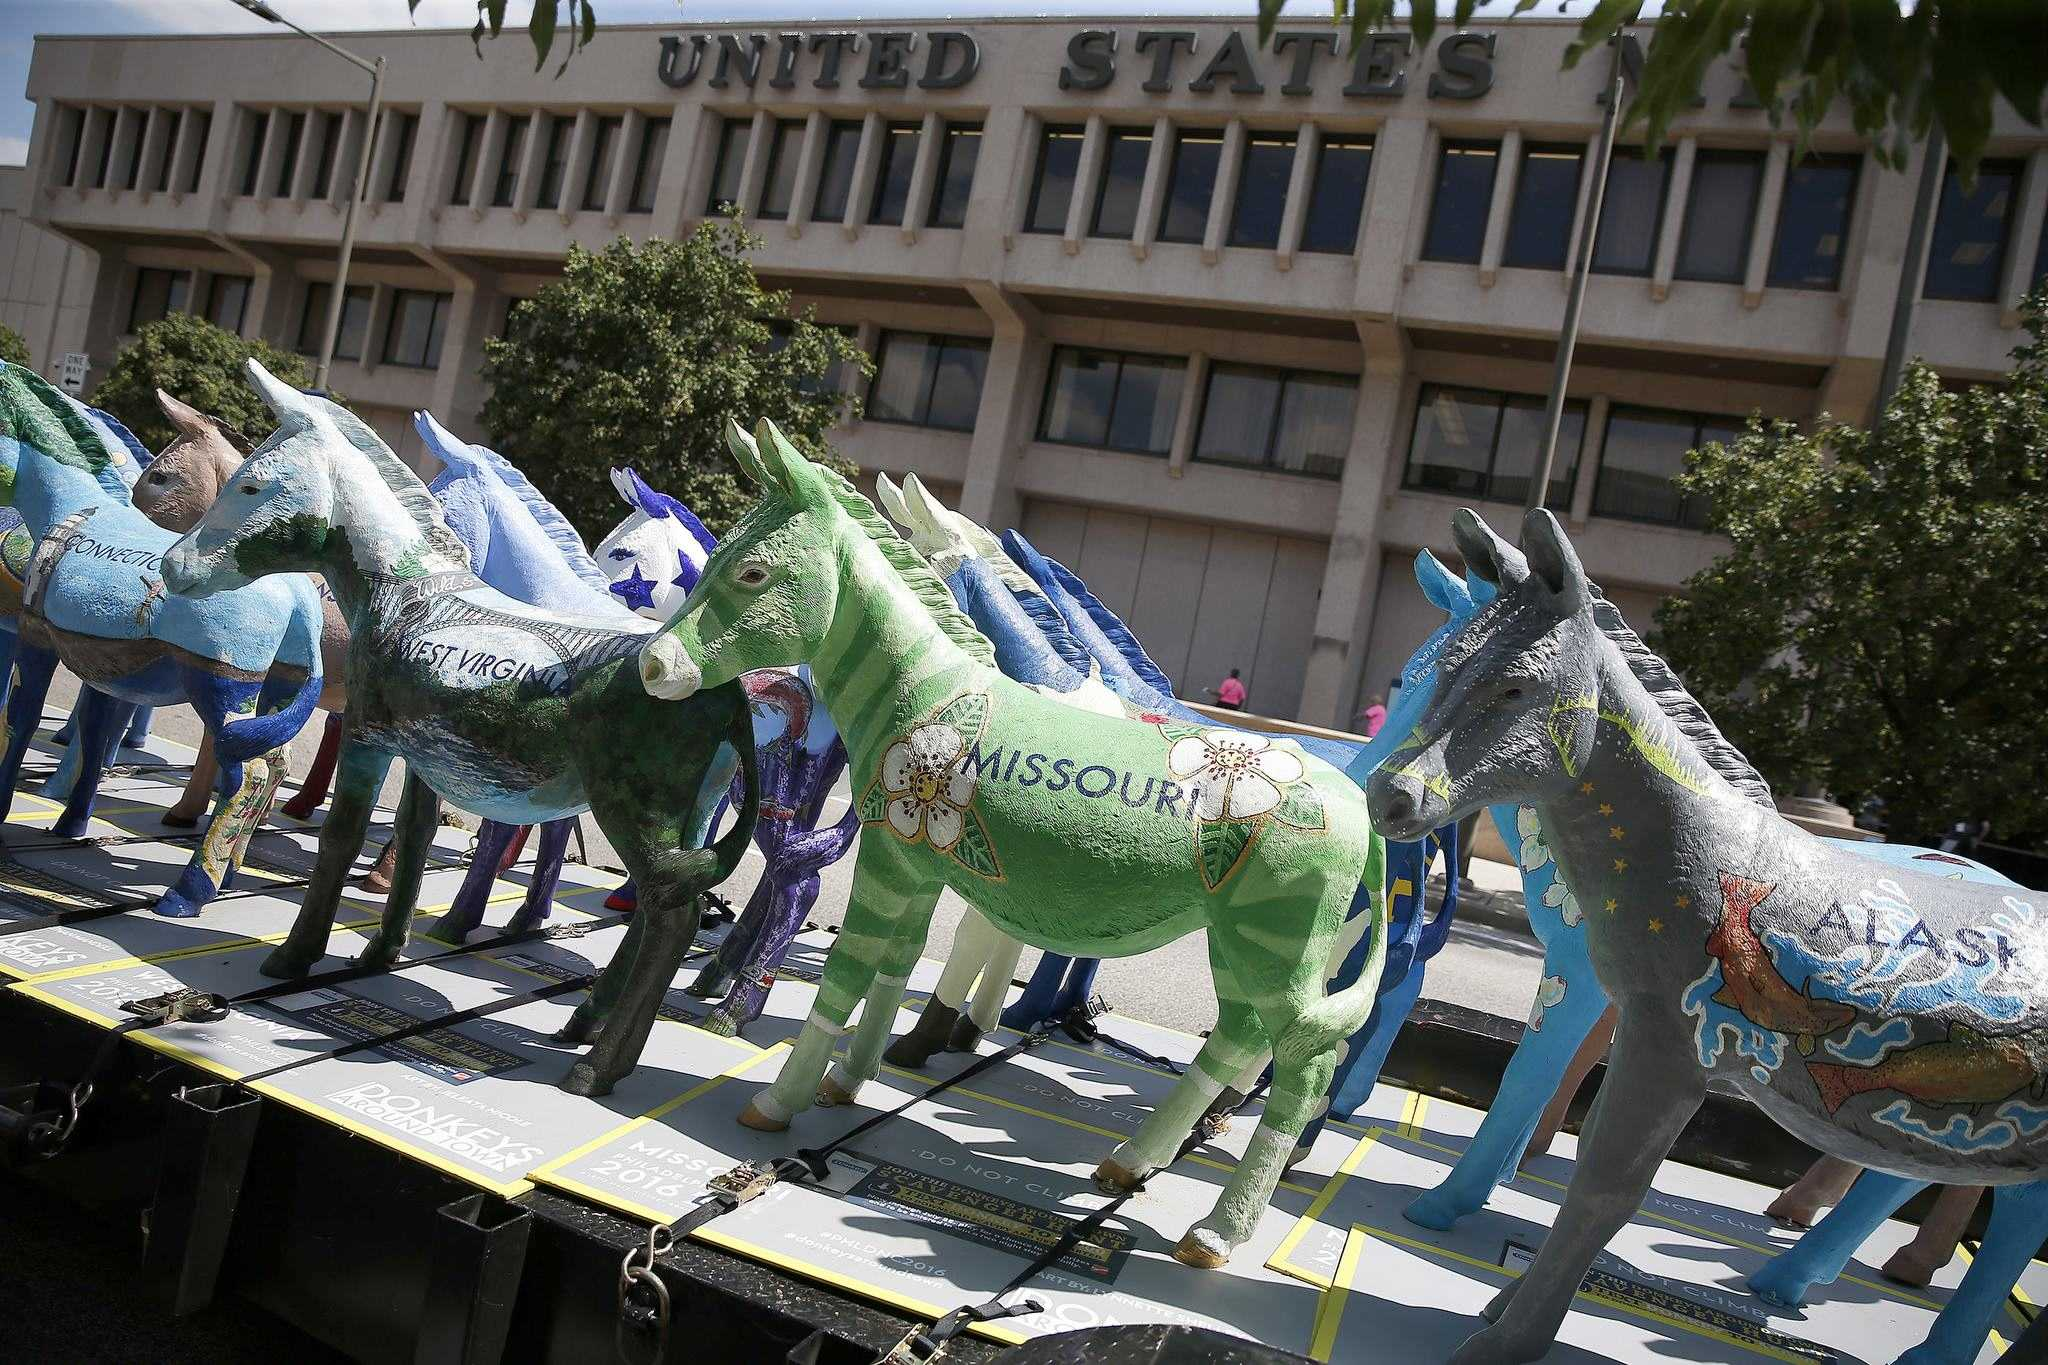 The last batch of DNC Donkeys wait to be shipped out of Philadelphia Wednesday, August 24, 2016. The fifty-seven fiberglass donkeys painted by local artists were a civic initiative of the Host Committee for the Democratic National Convention, and had been on display around the city since July 1